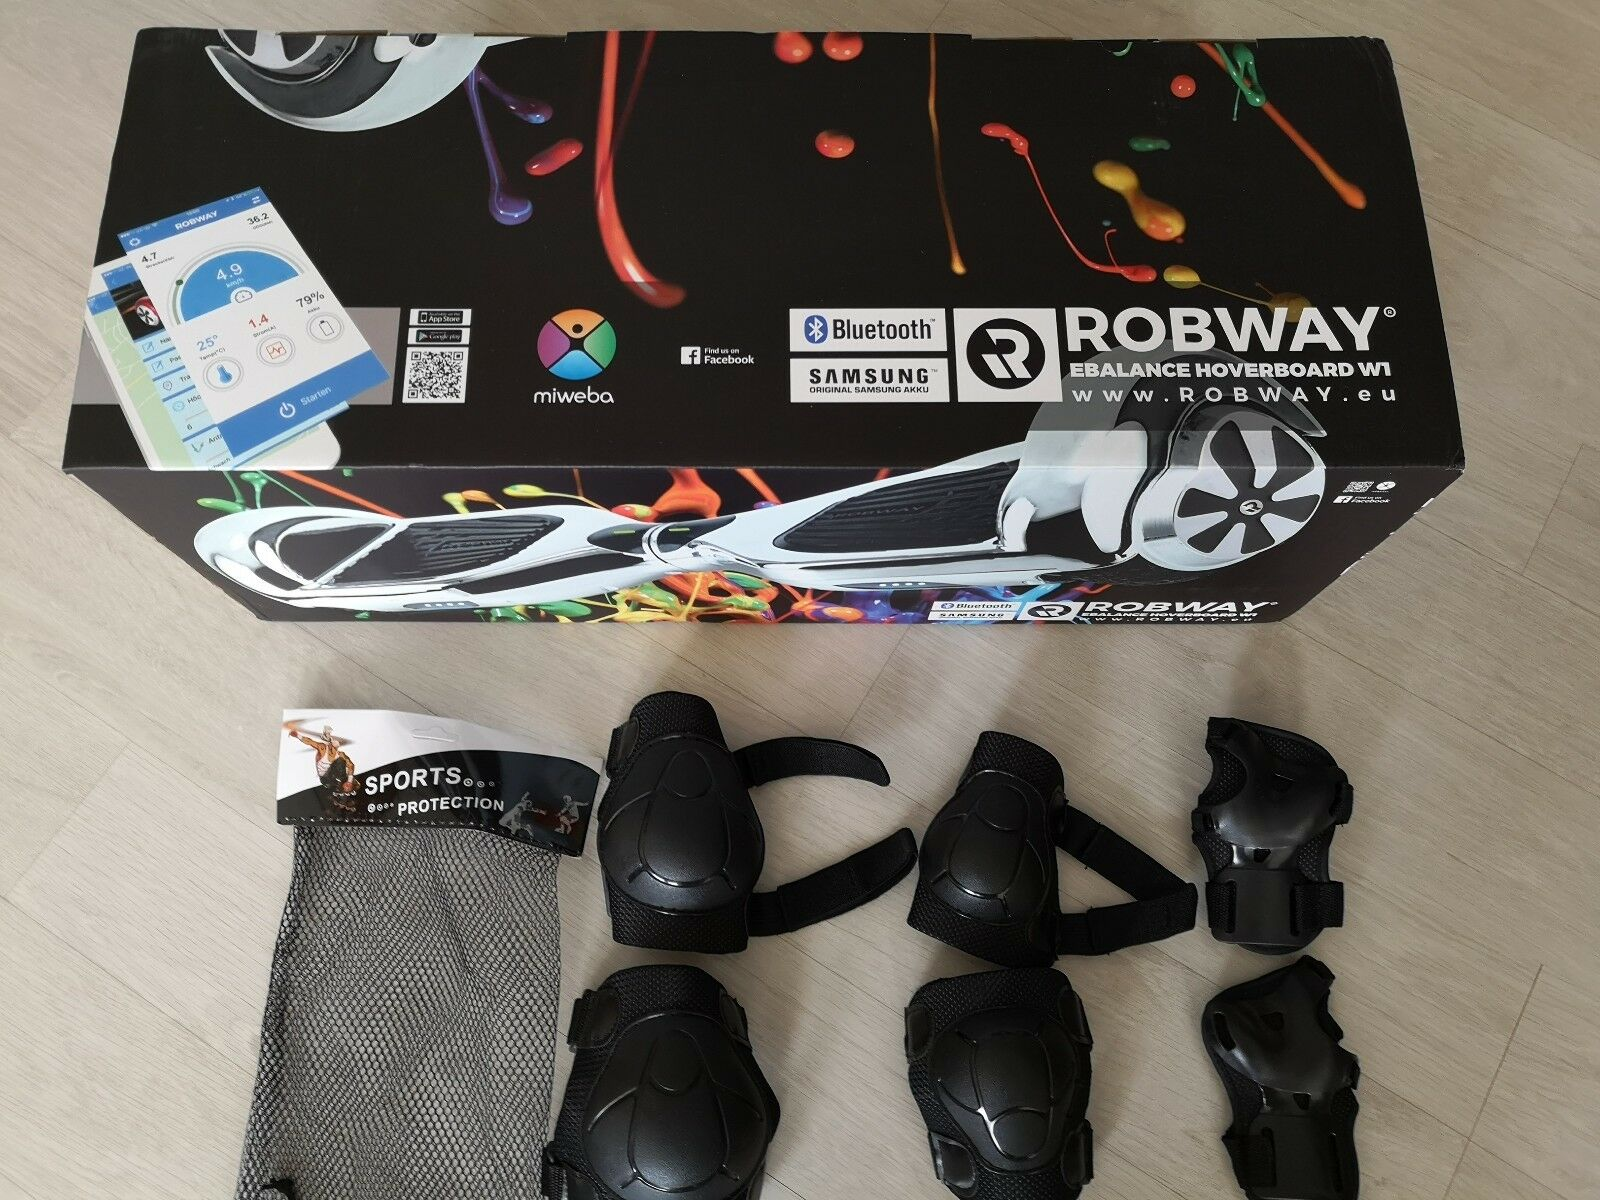 Overboard robway W1 W1 robway E-balance scooter smart blutooth 776db4